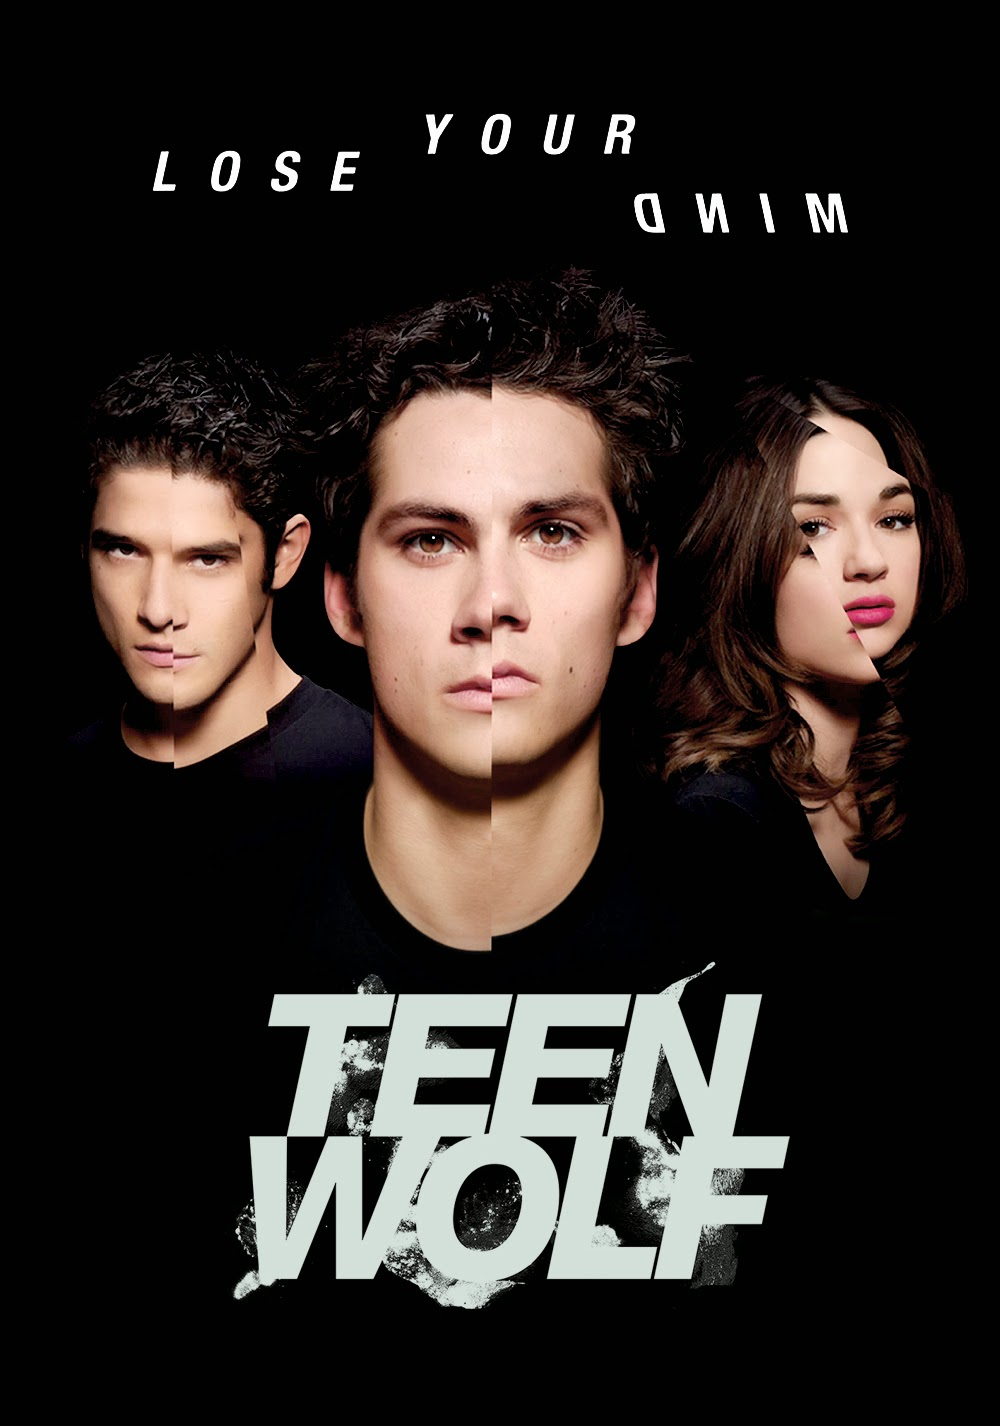 Teen Wolf Season 3 All Episodes Download